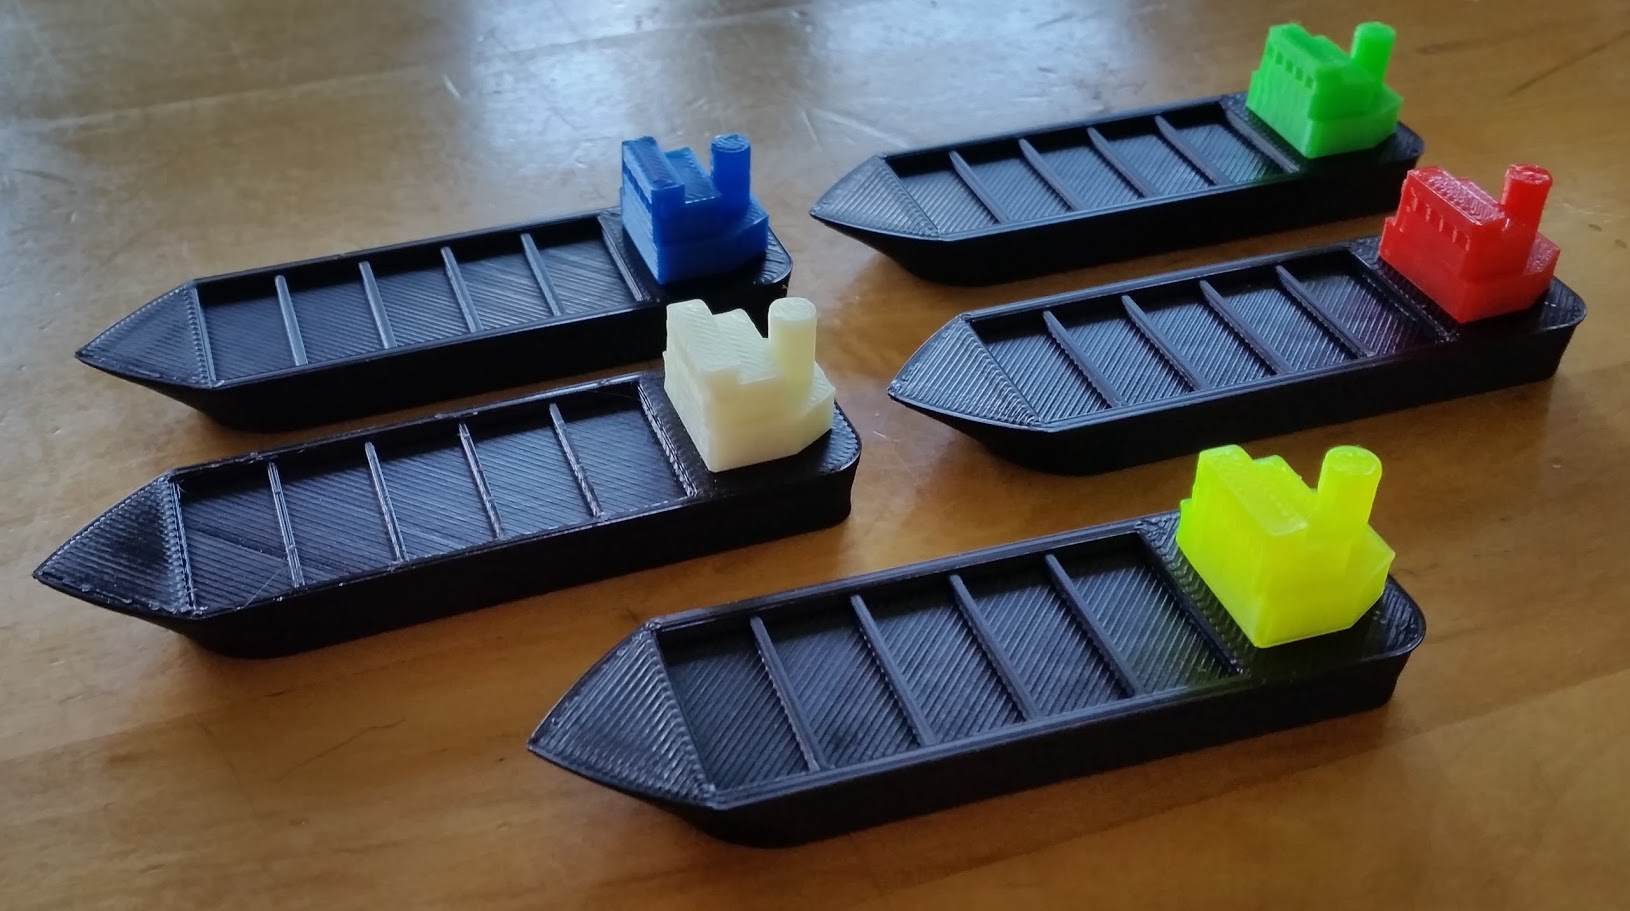 container_board_game_3d_print_006.jpg